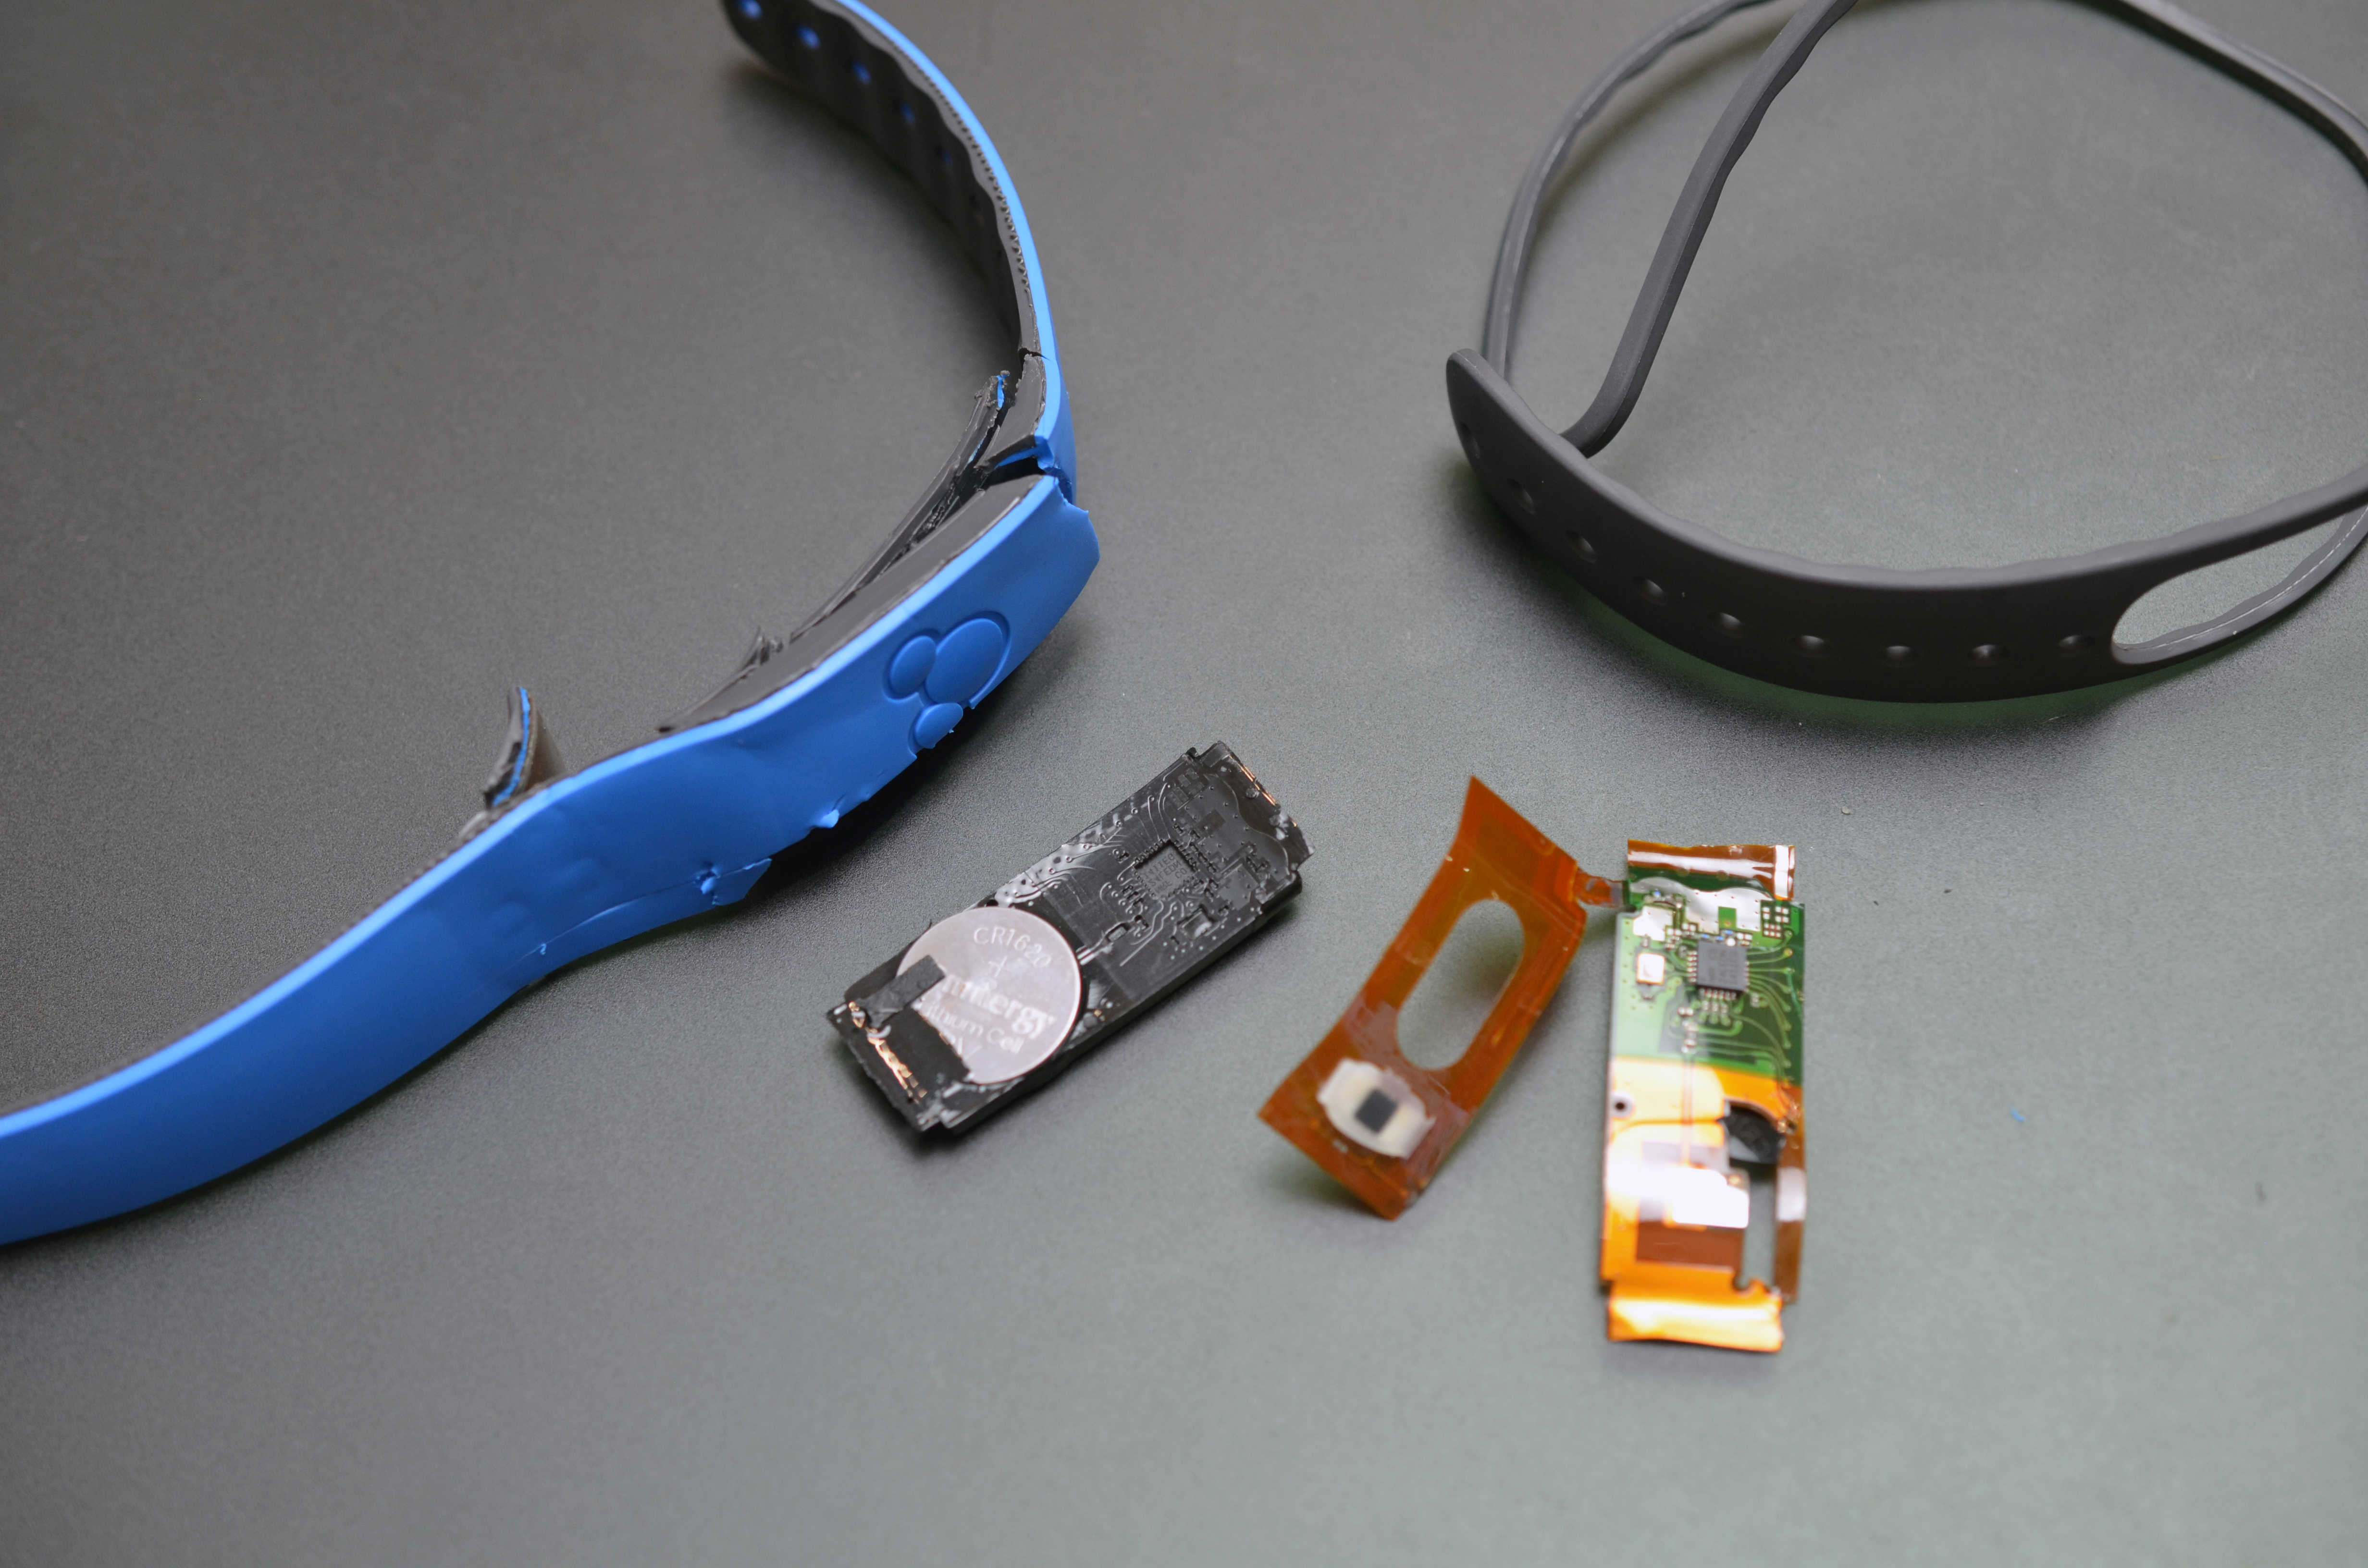 rfid___nfc_magic-band-01.jpg